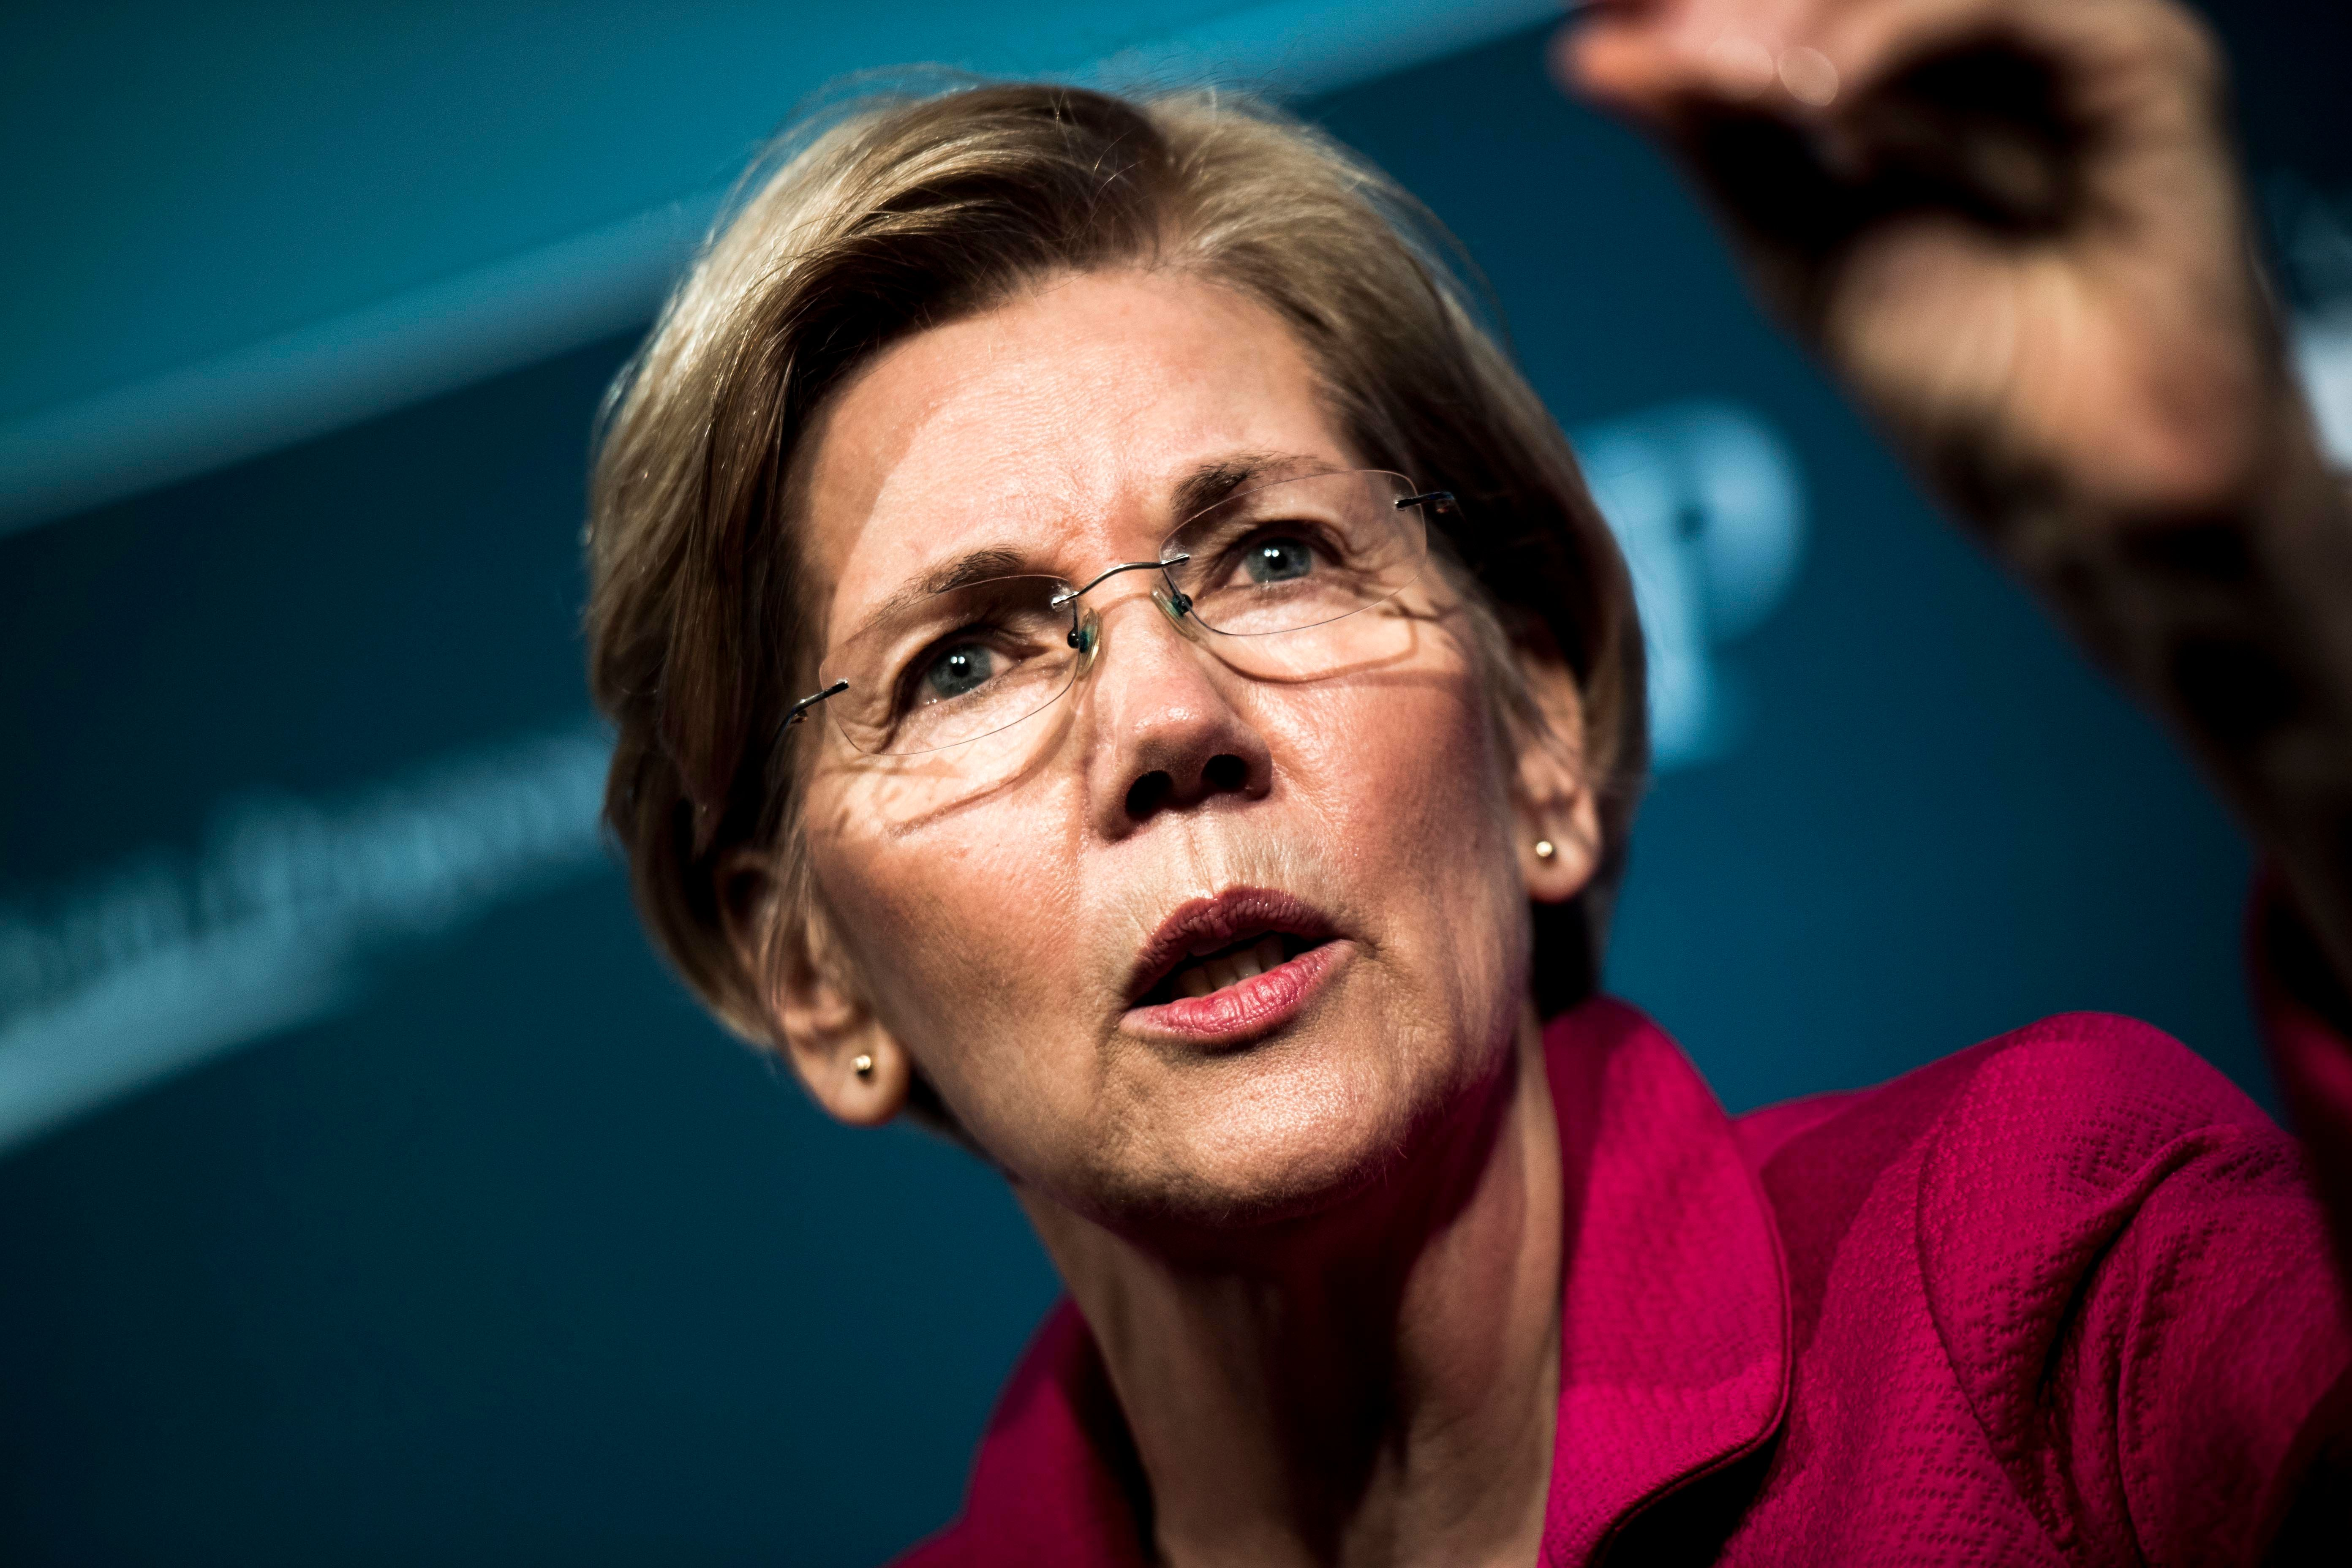 Sen. Elizabeth Warren (D-Mass.) is open to impeaching President Donald Trump if proof emerges that the worst allegations agai